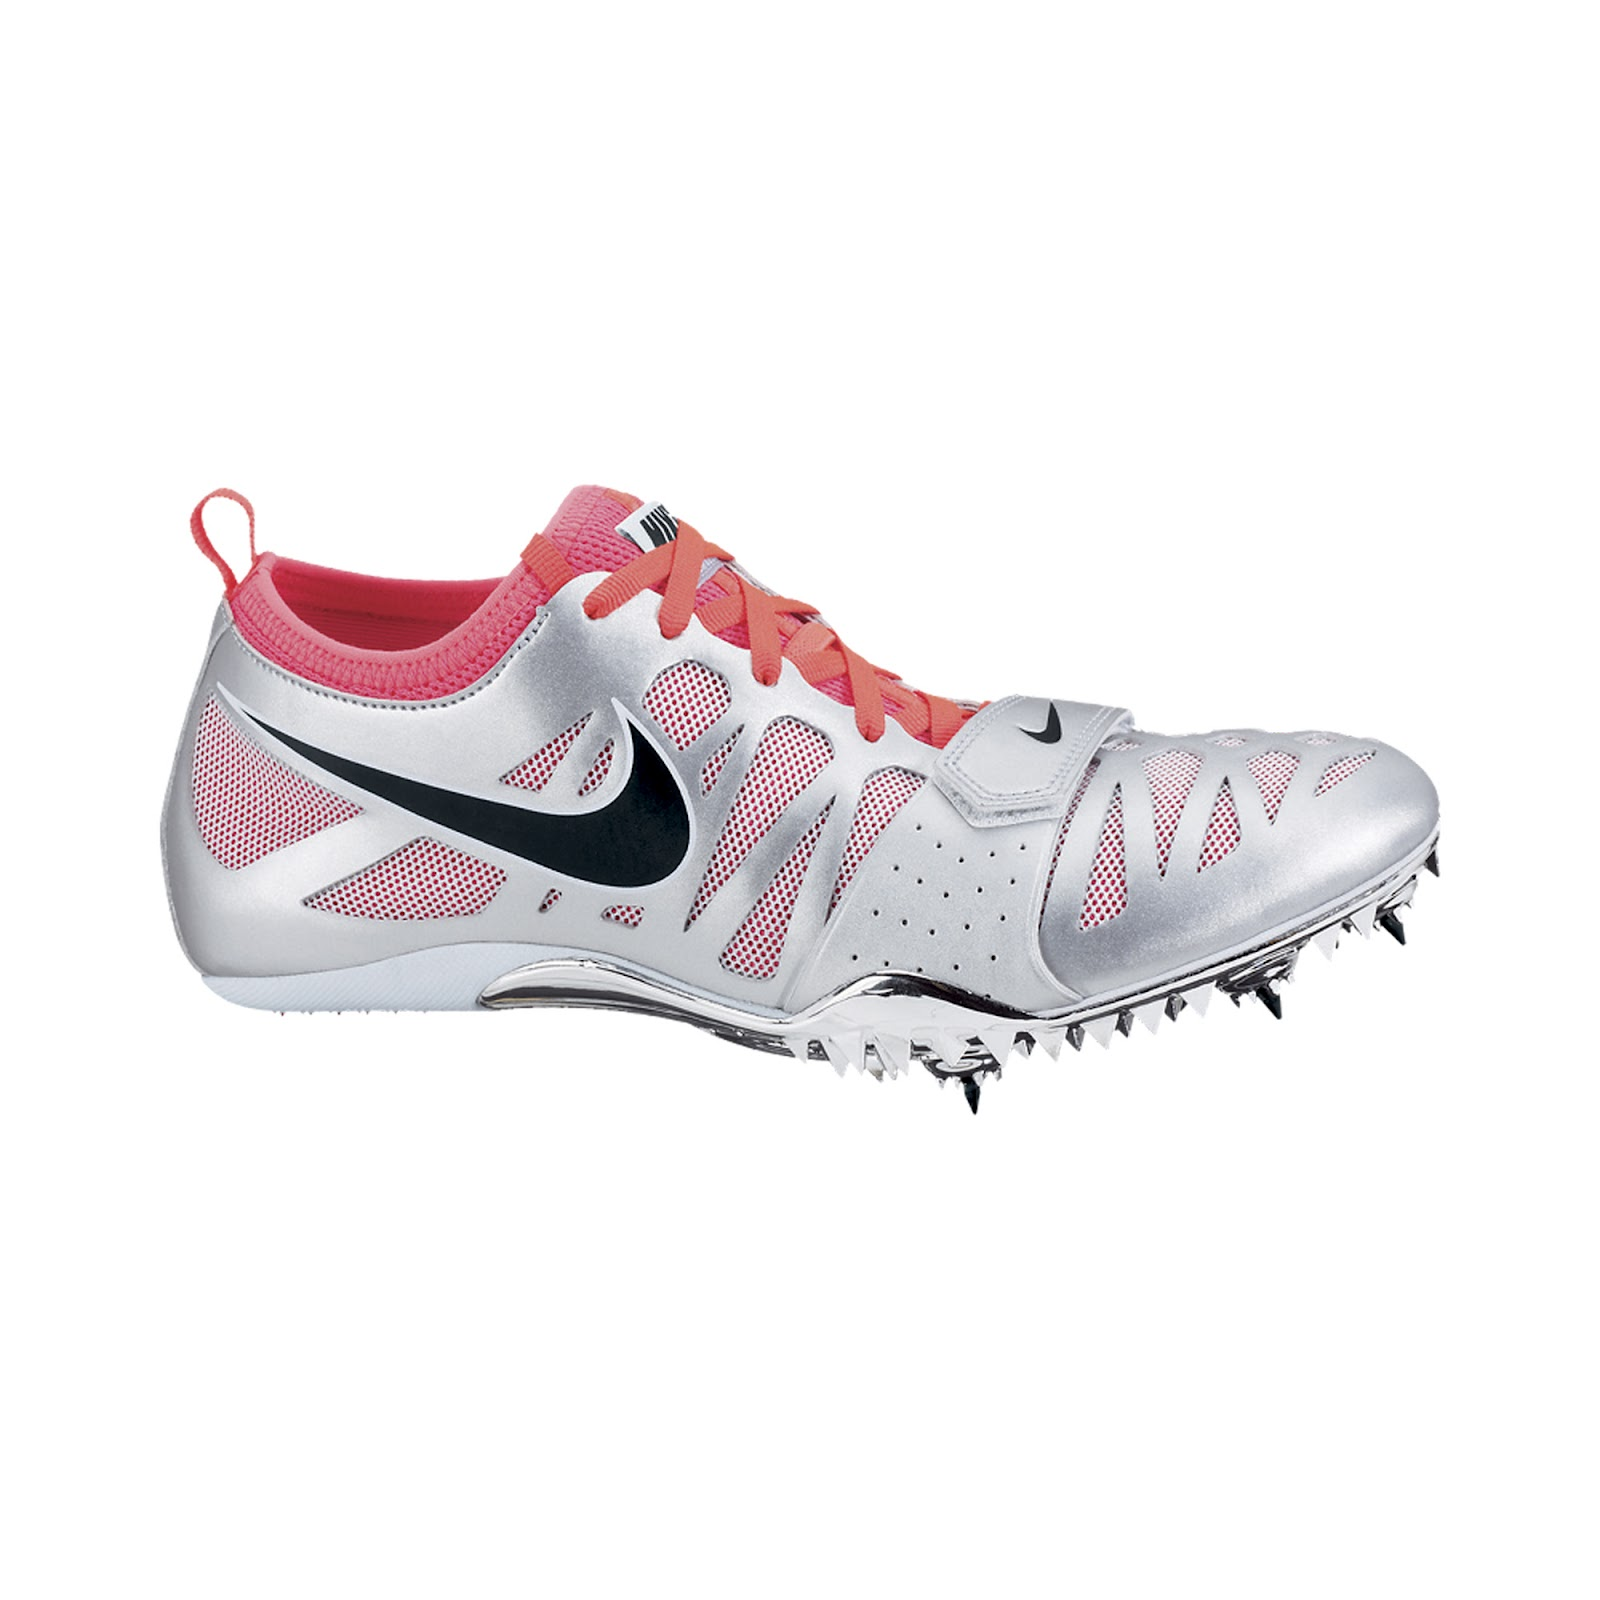 nike 2012 track and field spikes and shoes the running